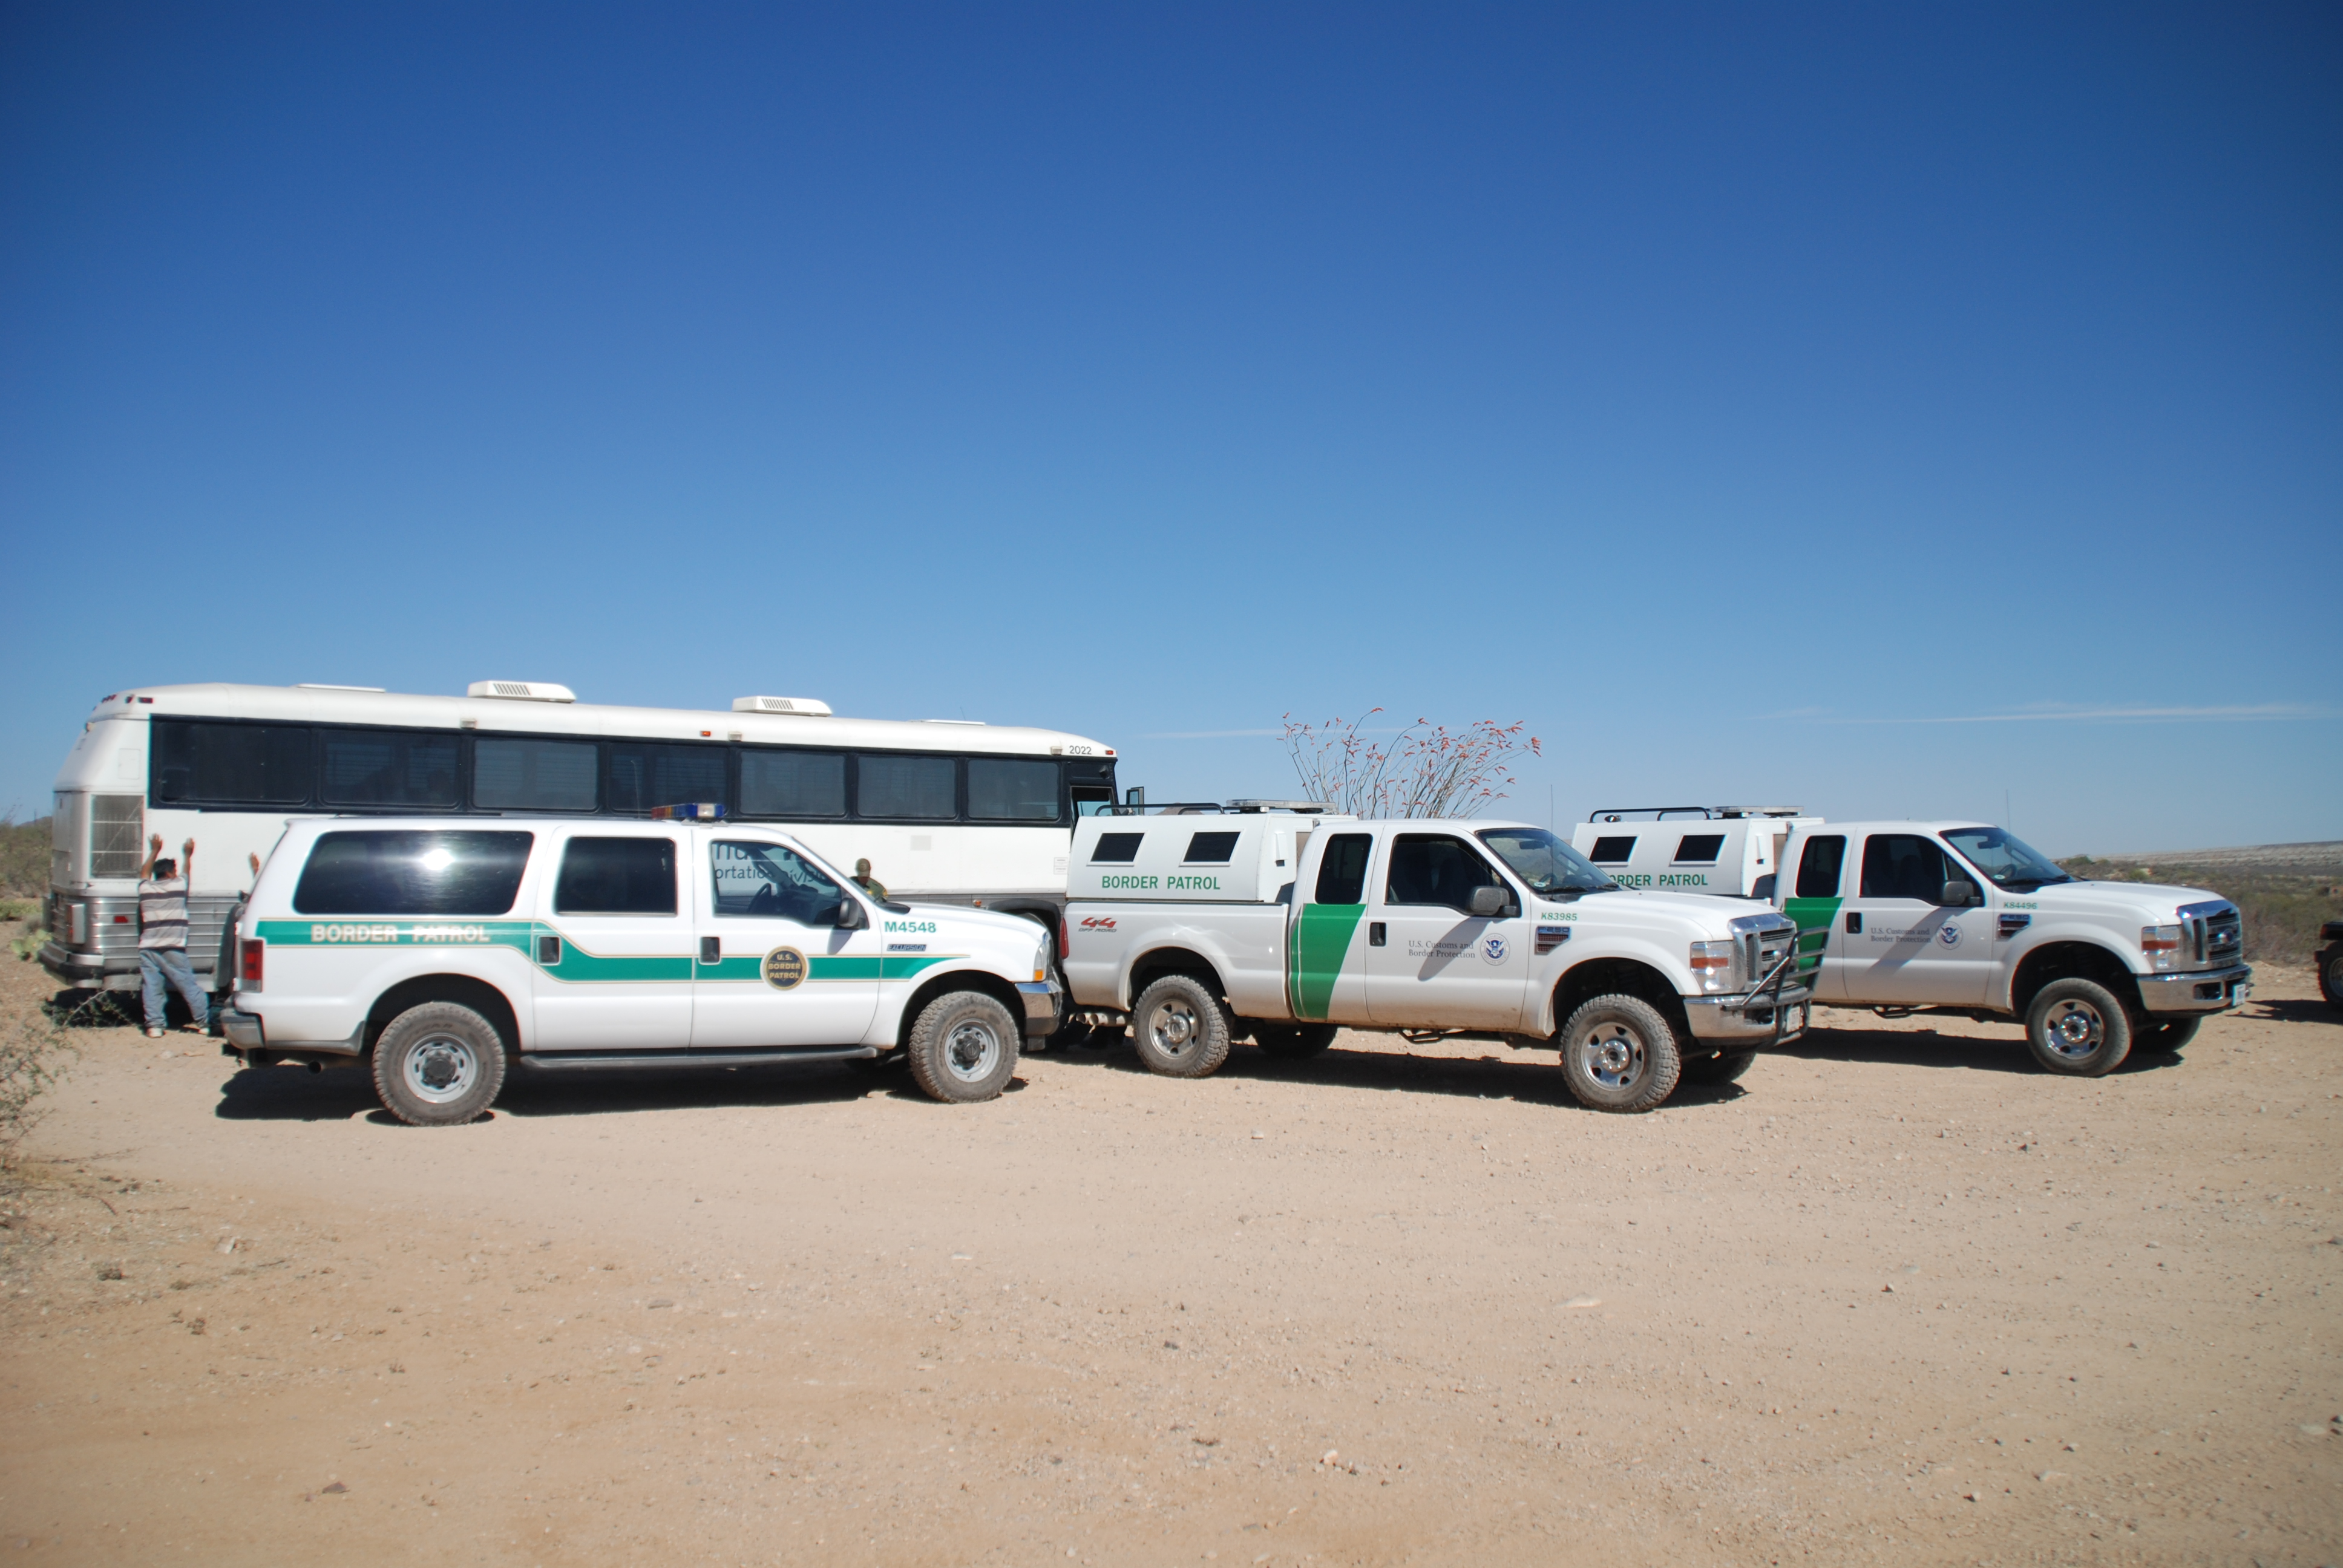 Border Patrol Vehicles Border patrol agents apprehend